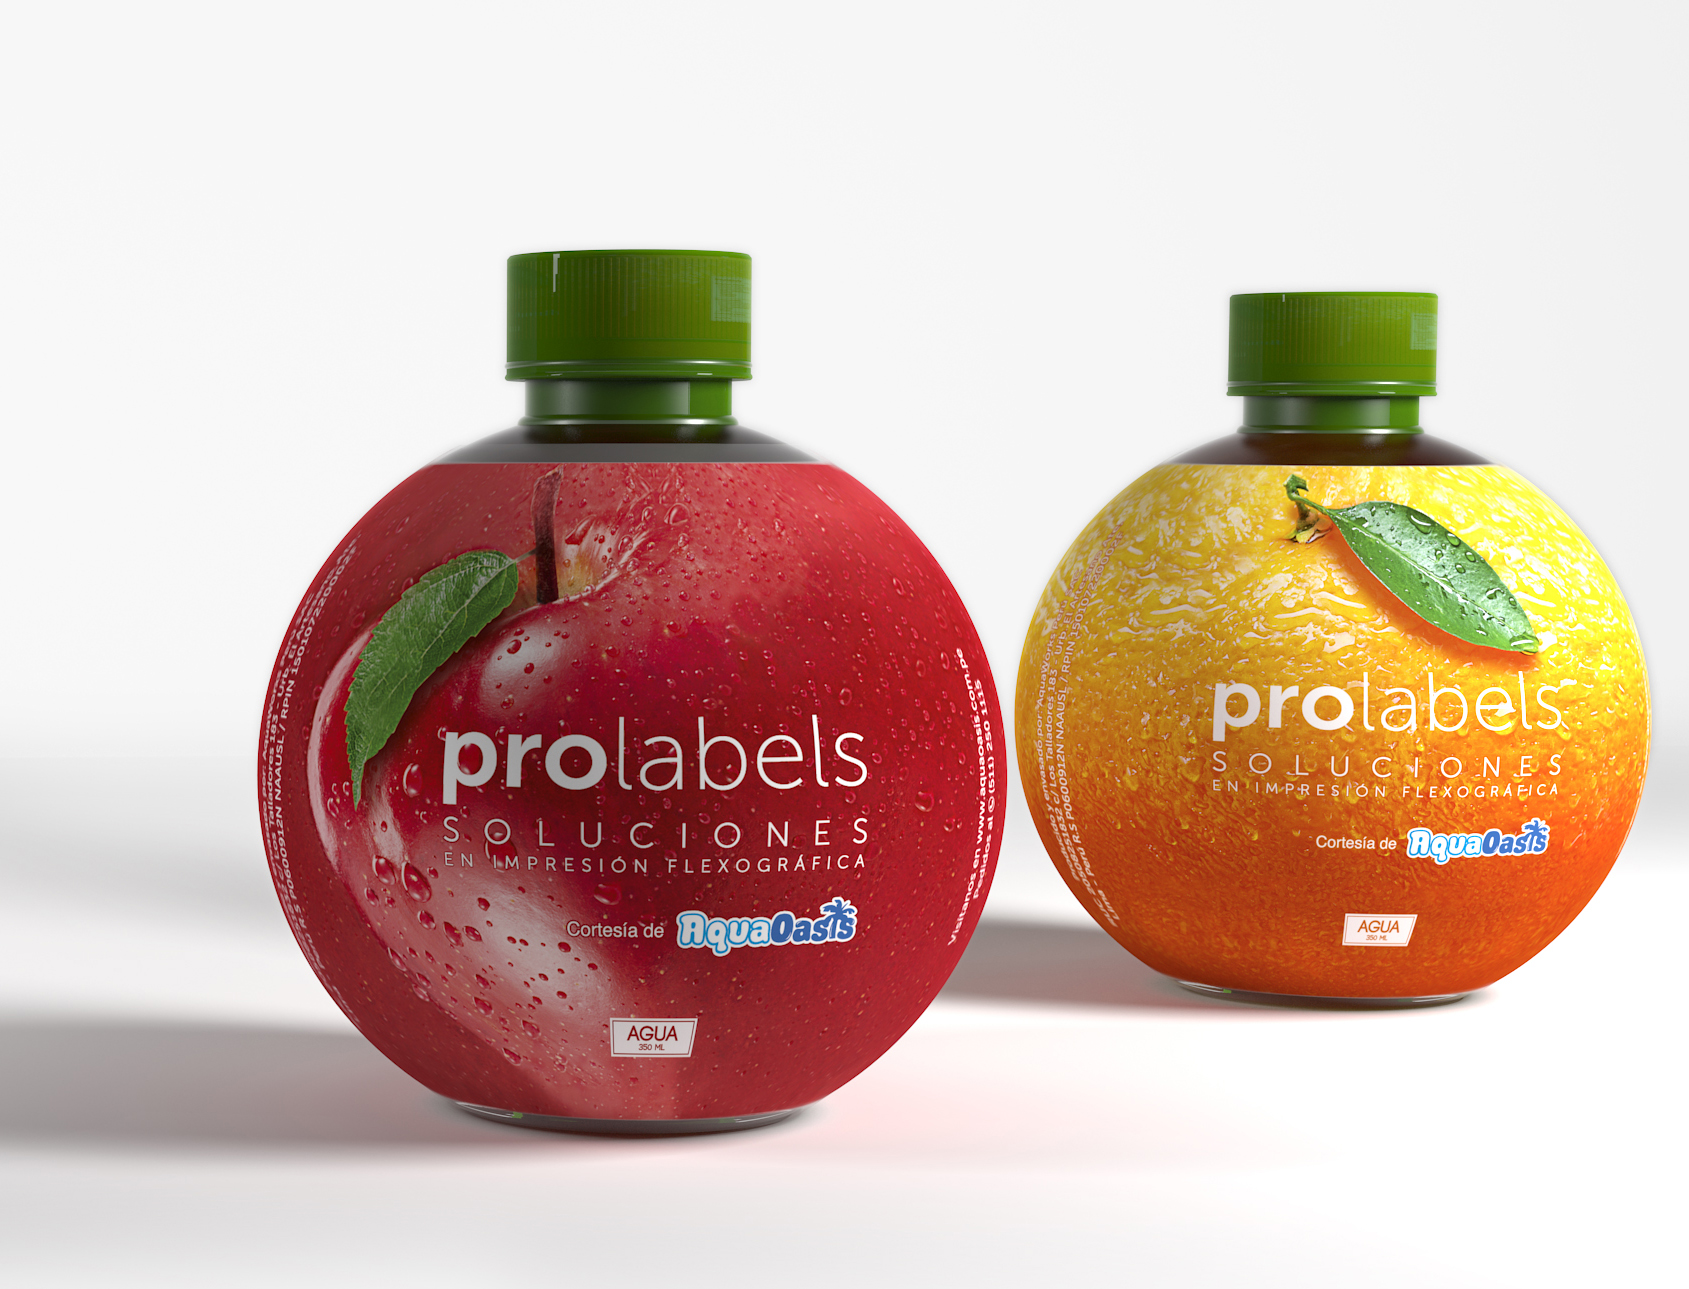 PROLABELS